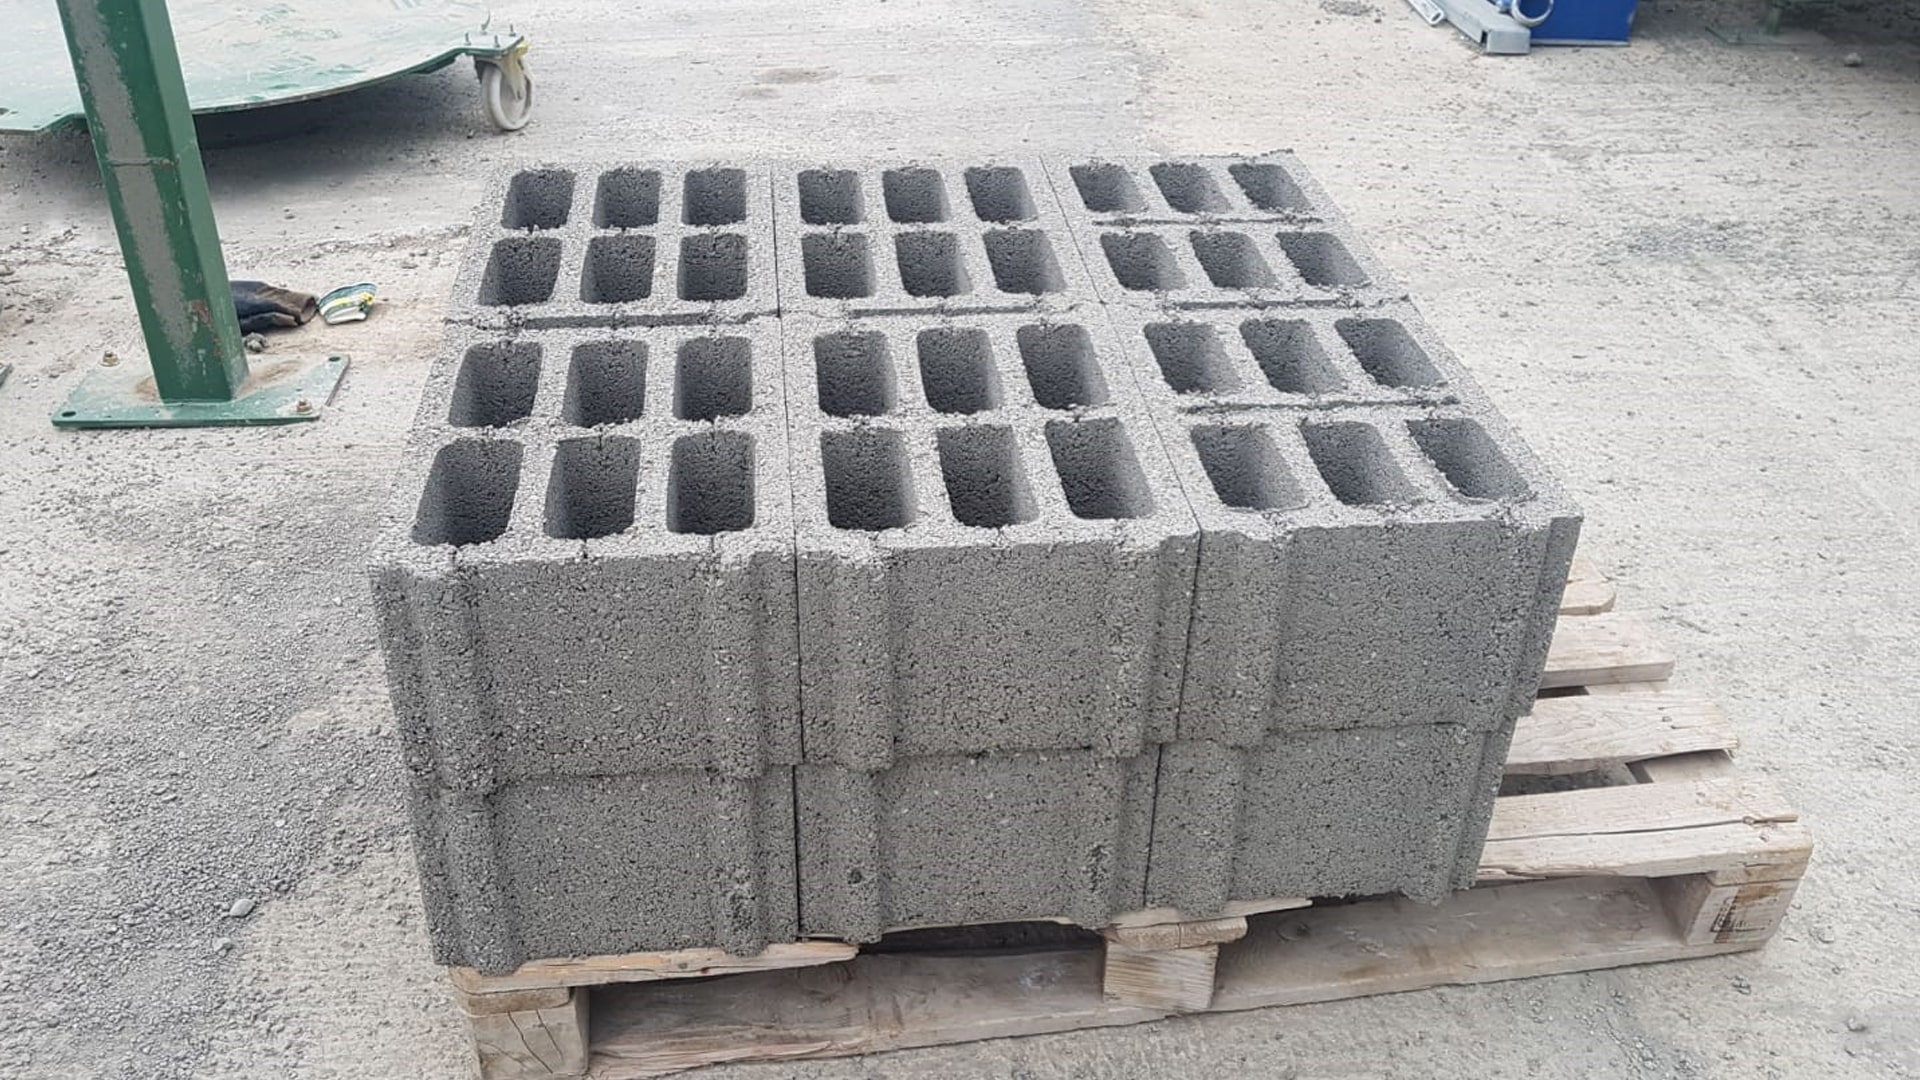 hollow_concrete_block_interlocking_type.jpg